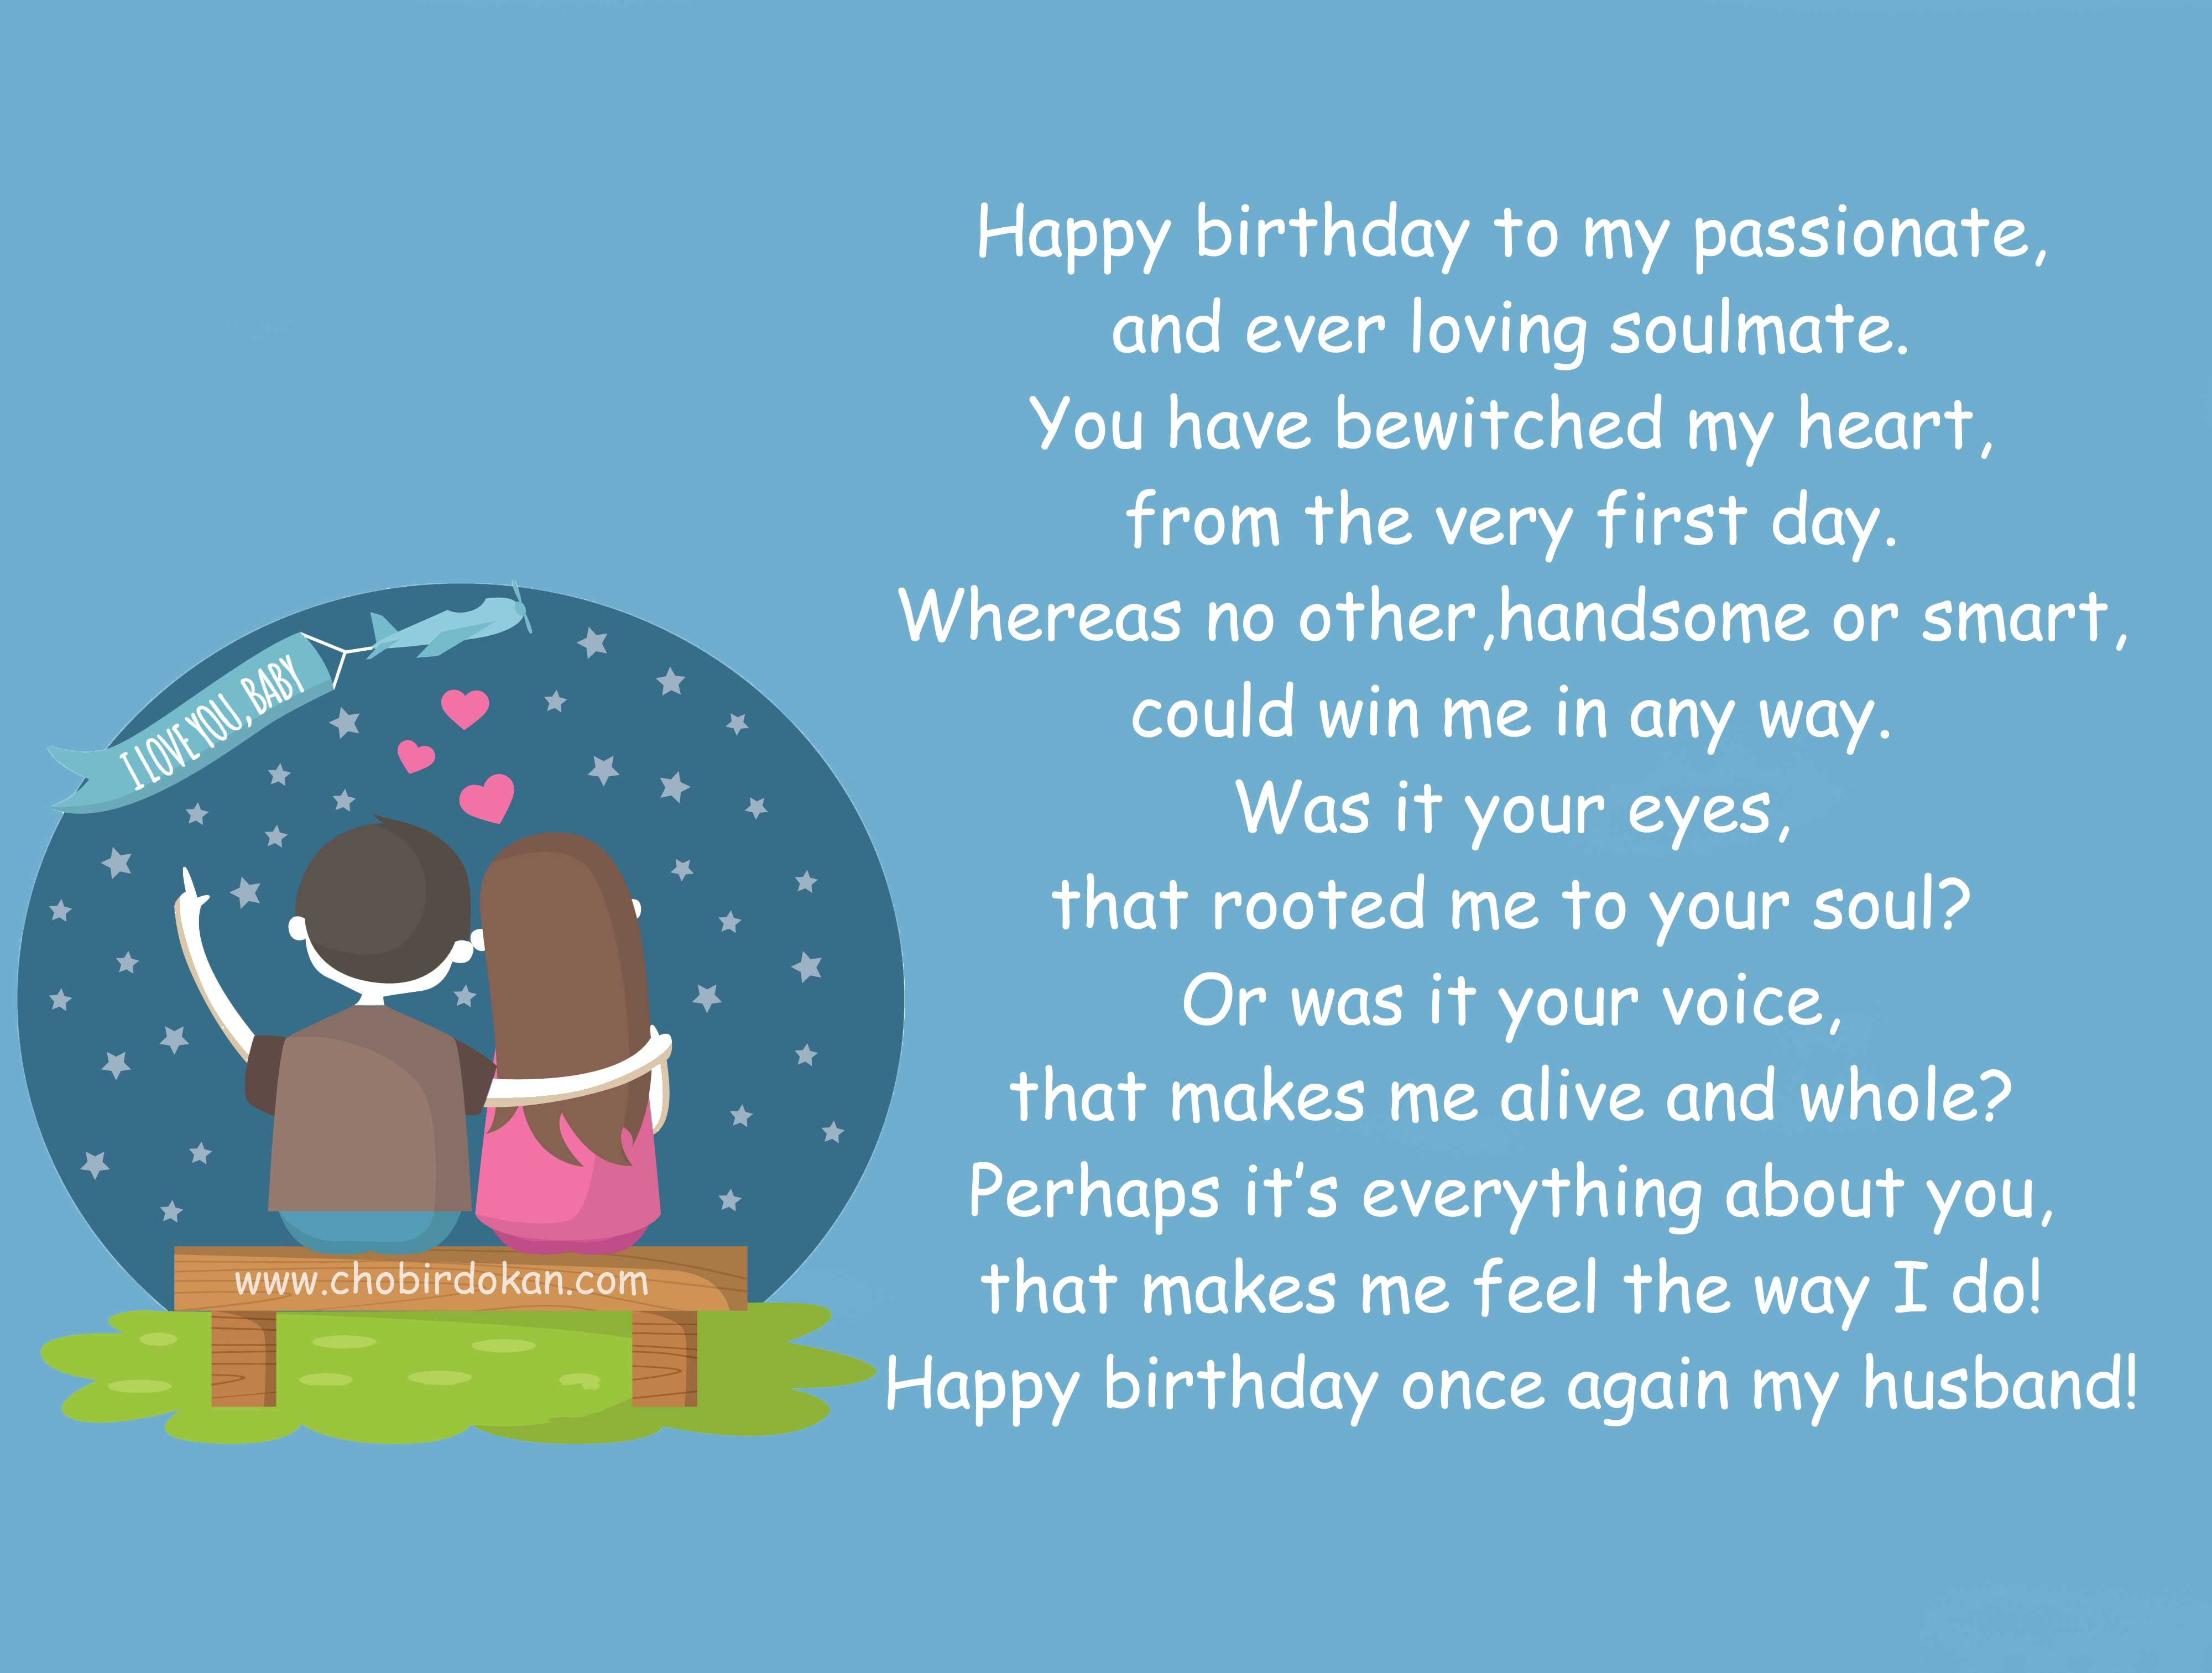 Happy birthday poem for him